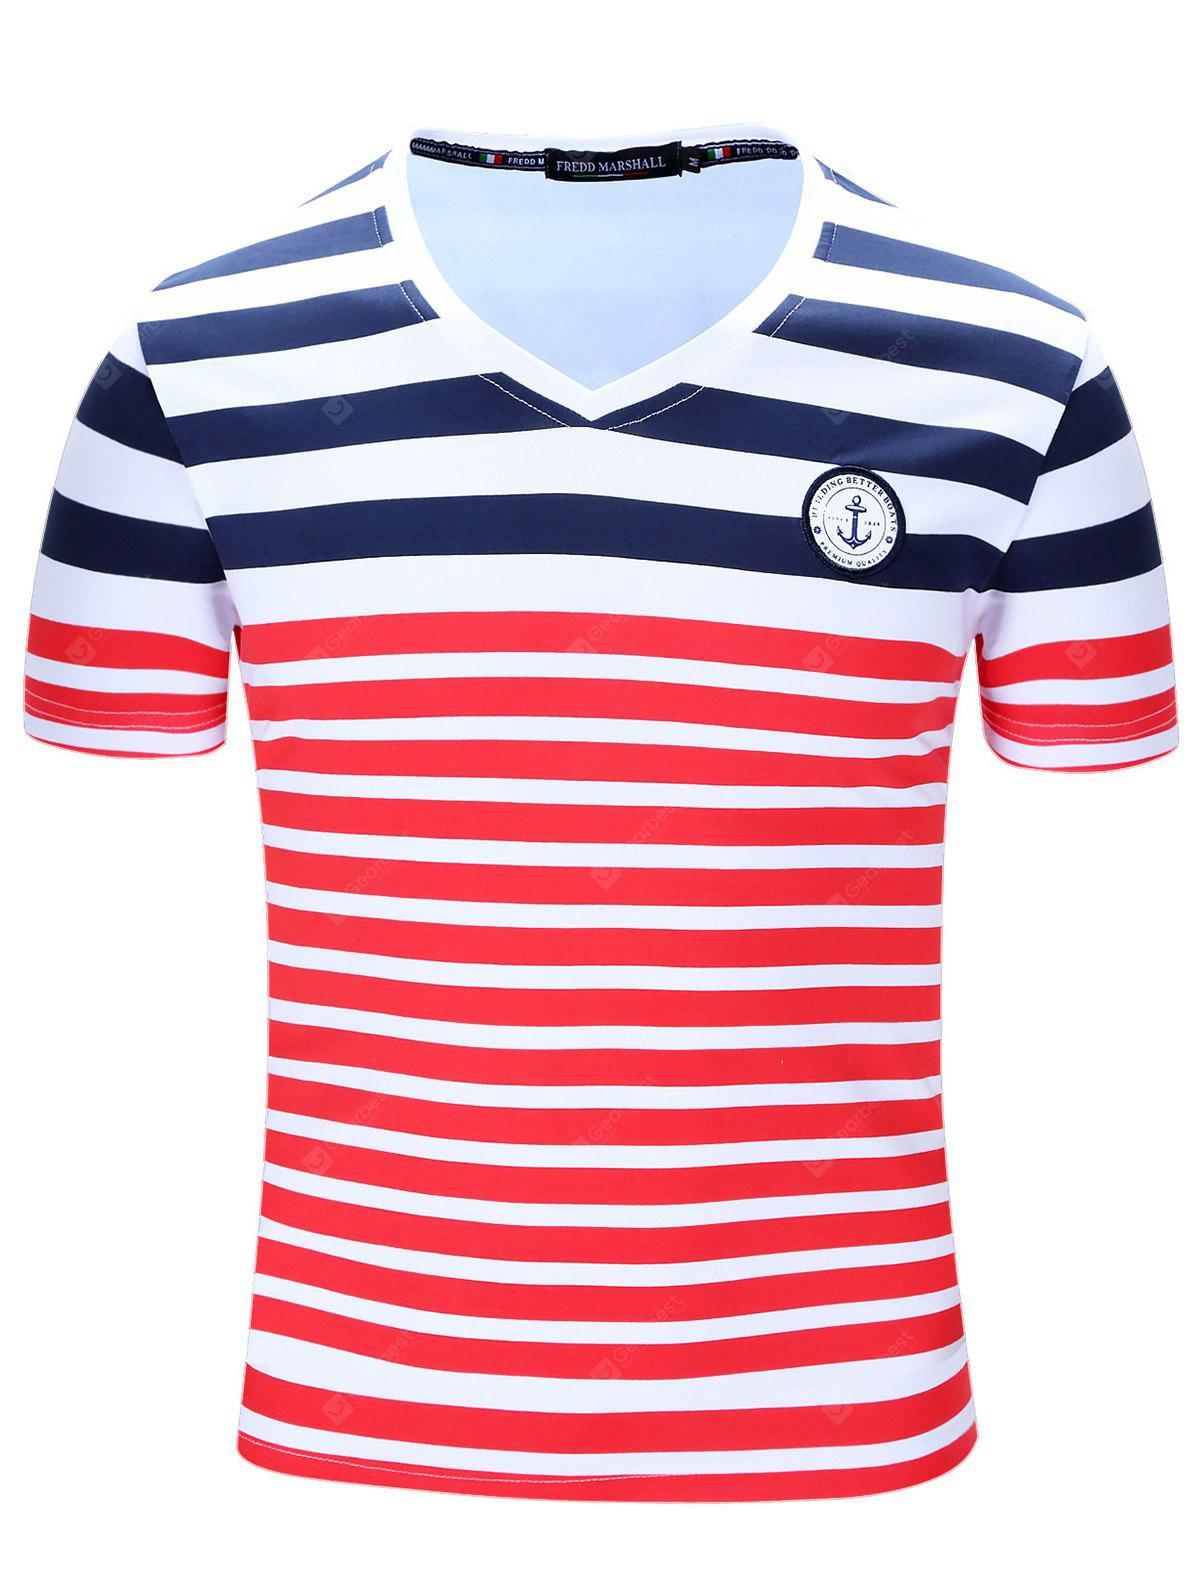 FREDDMARSHALL Striped T Shirt